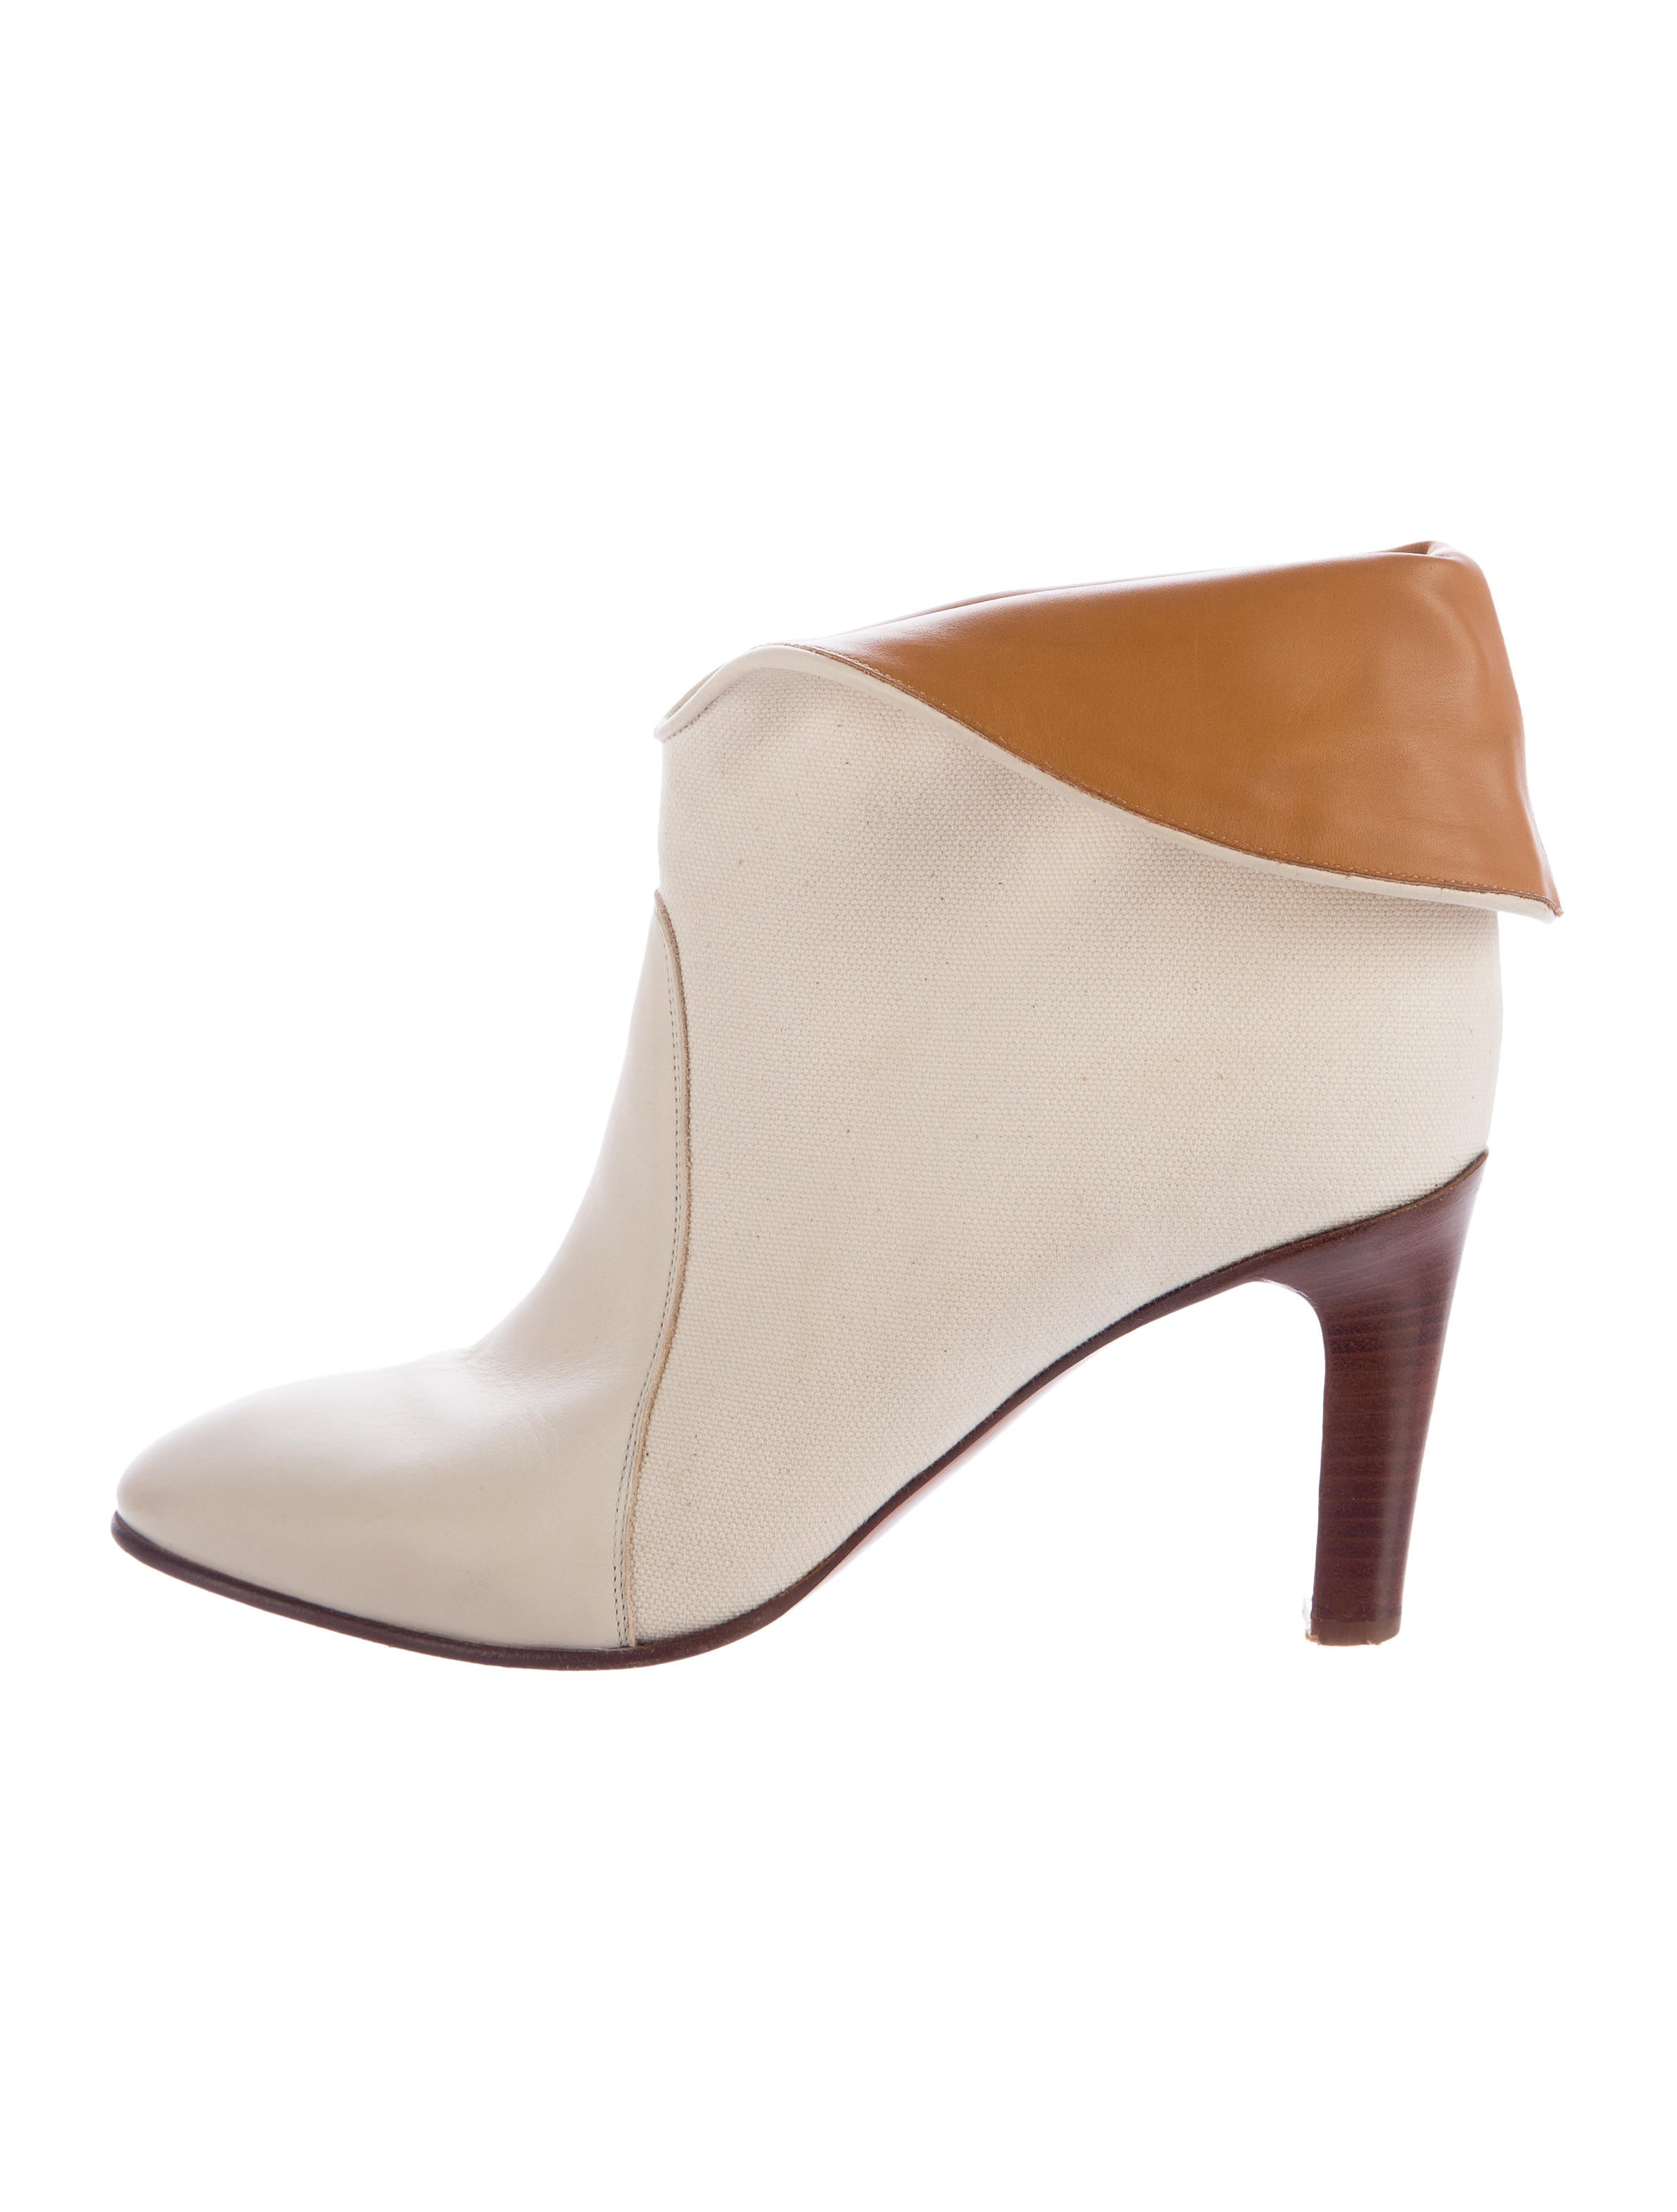 chlo 233 canvas toe ankle boots shoes chl55453